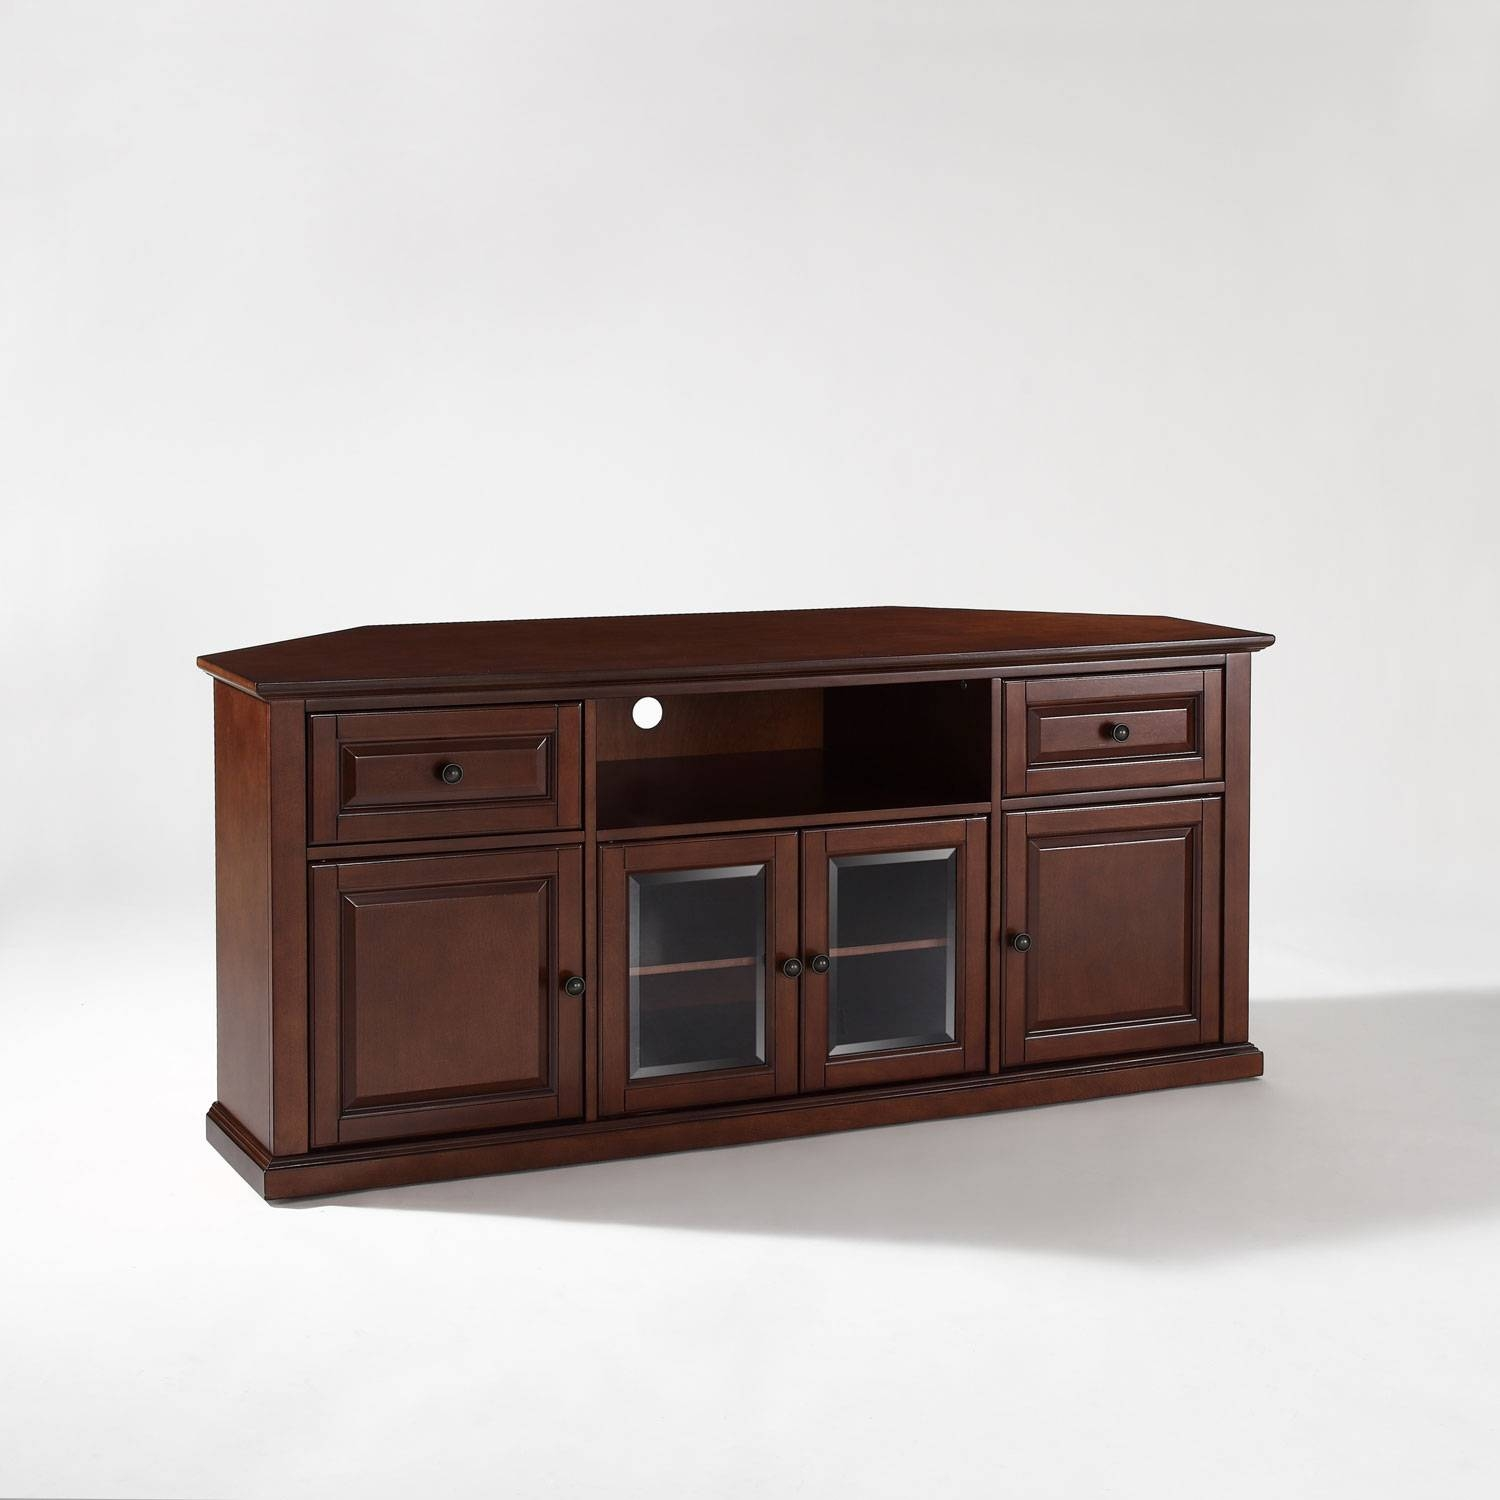 Tv Stands & Cabinets On Sale | Bellacor with Grey Corner Tv Stands (Image 13 of 15)